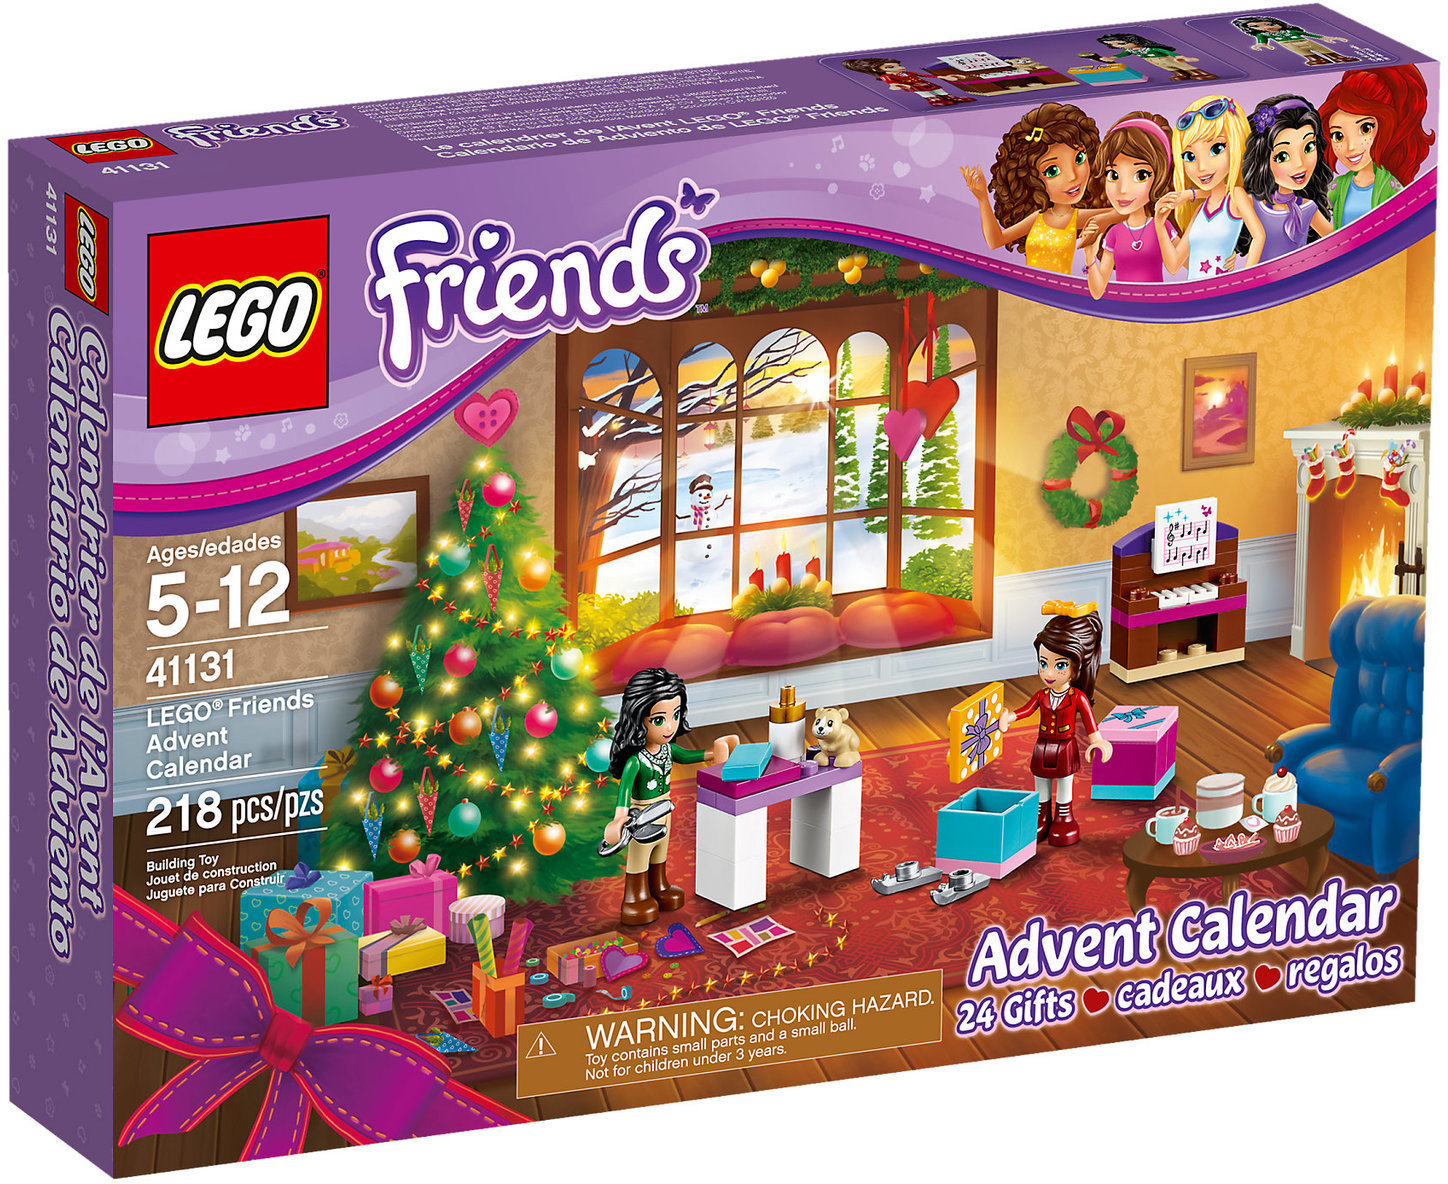 Calendario dell'Avvento 2016 Lego Friends (codice 41131)